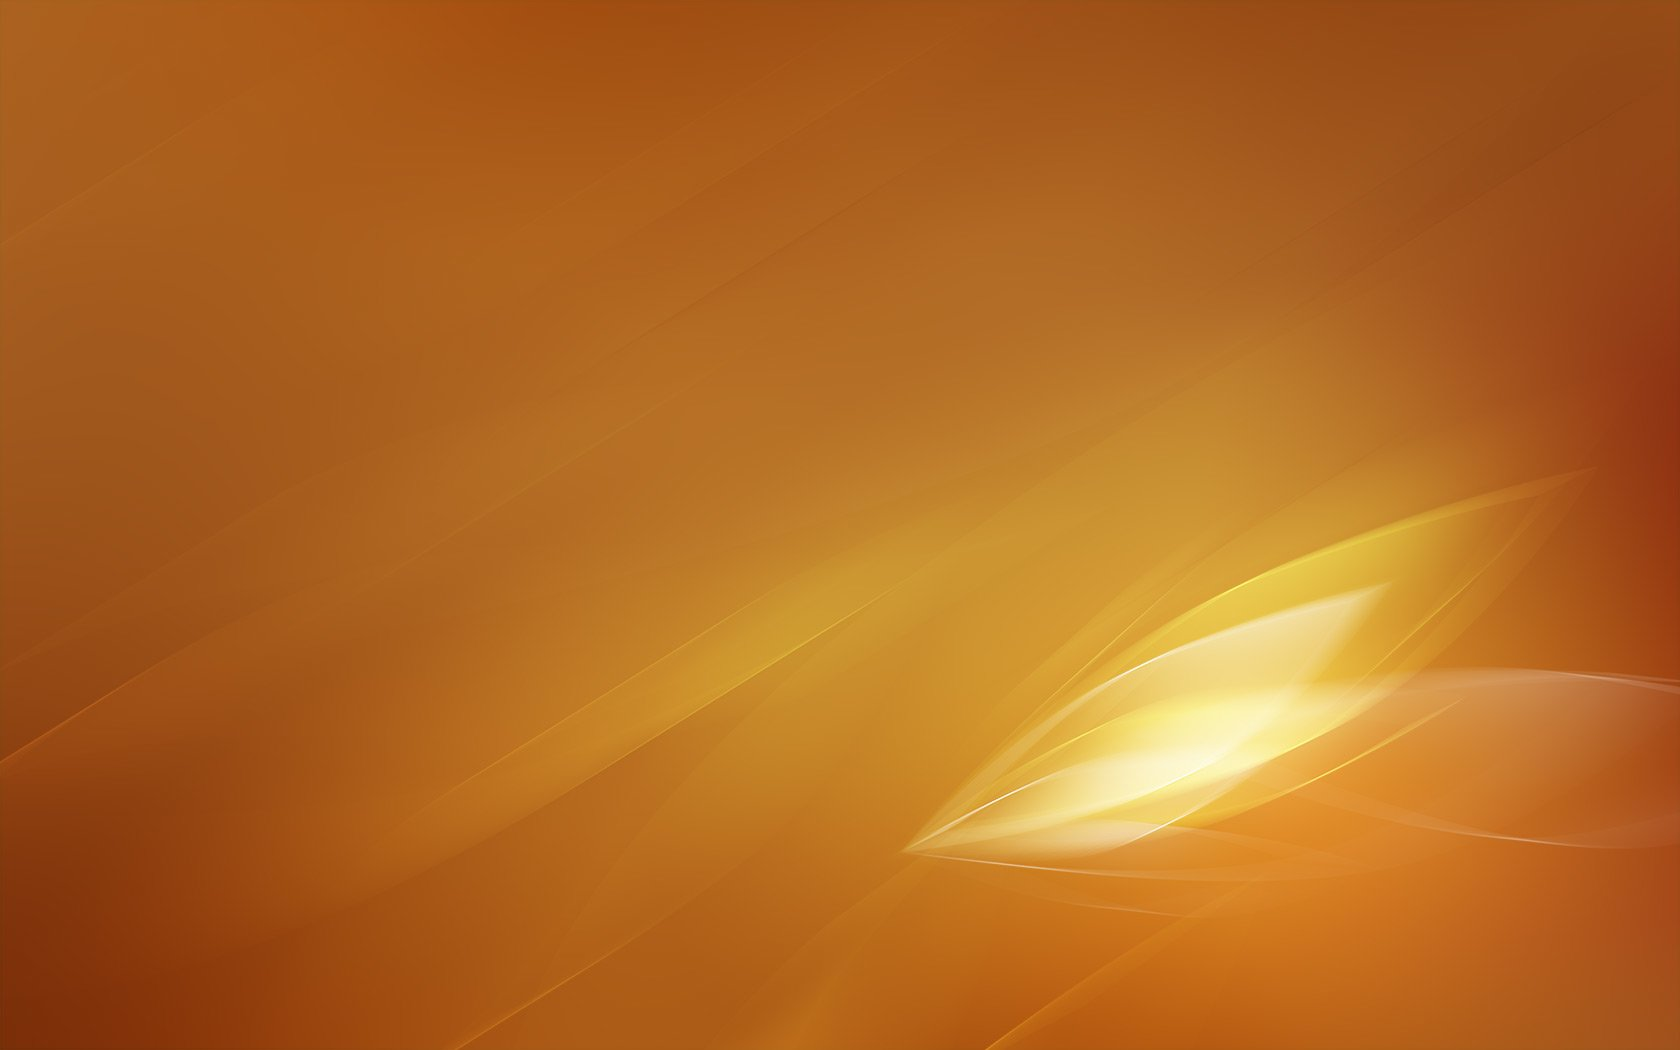 Wallpapers ID:74173